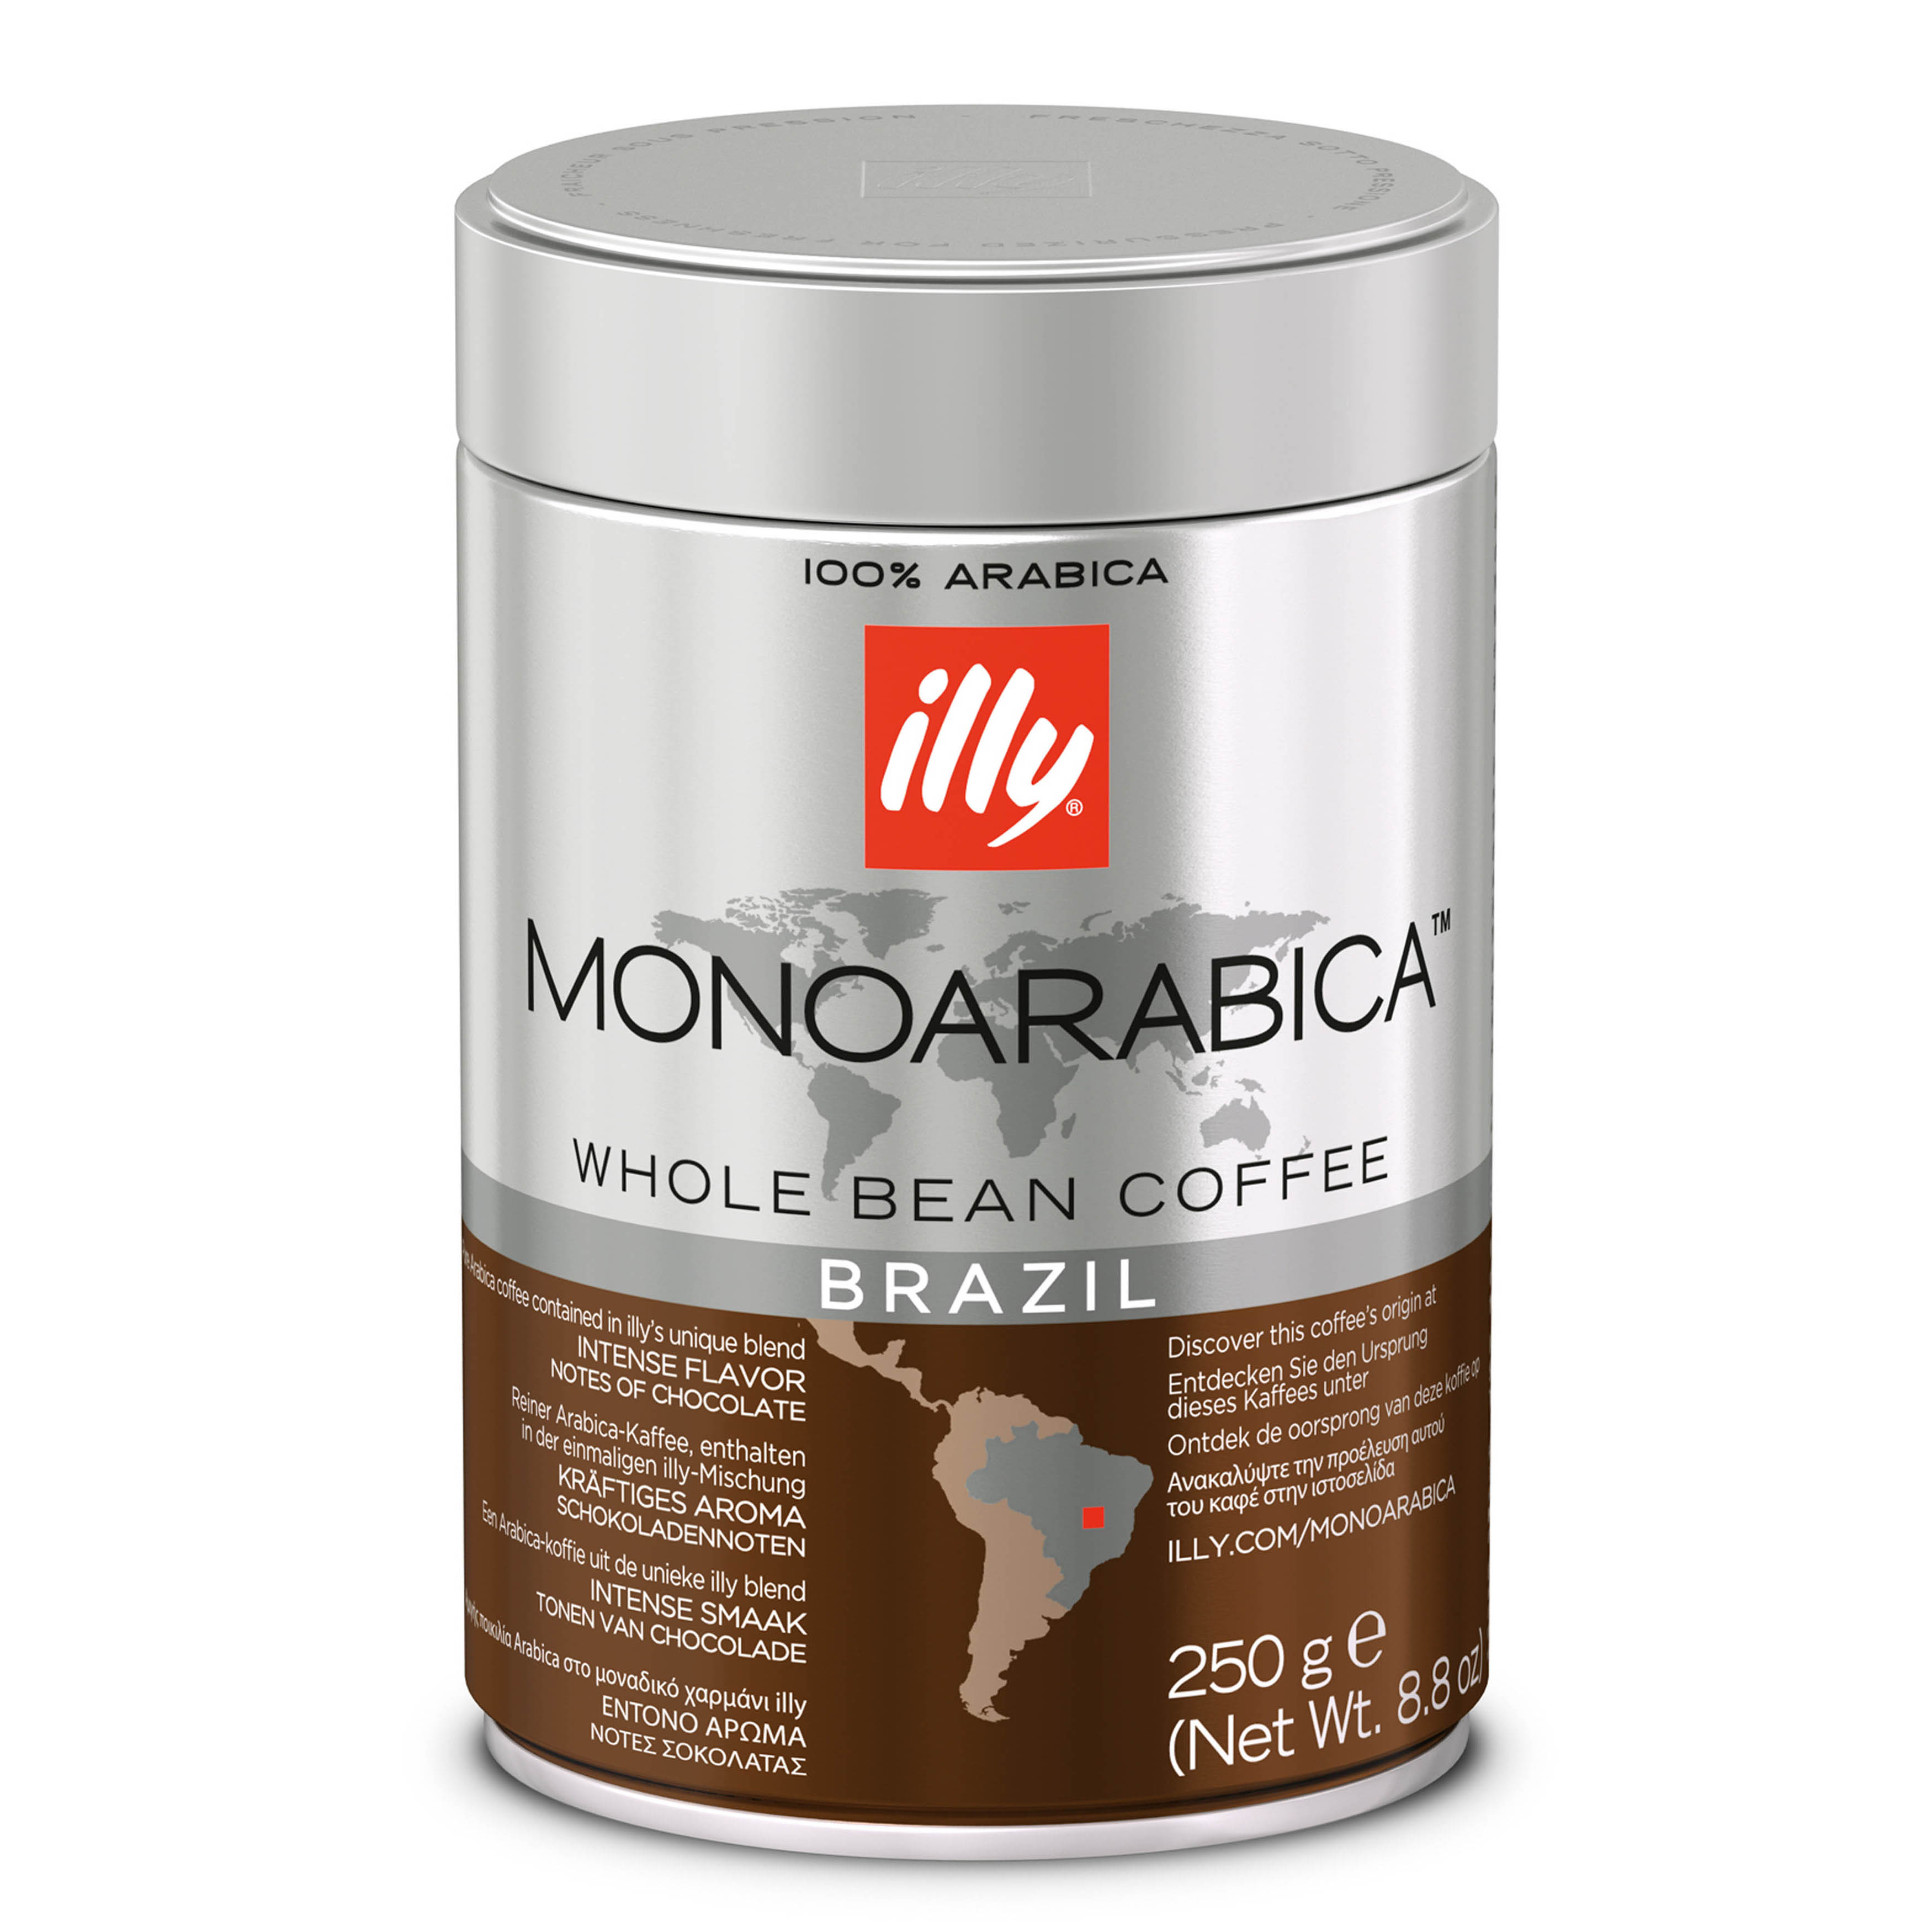 Illy Brazil Monoarabica Whole Bean Coffee - 250g (pc)